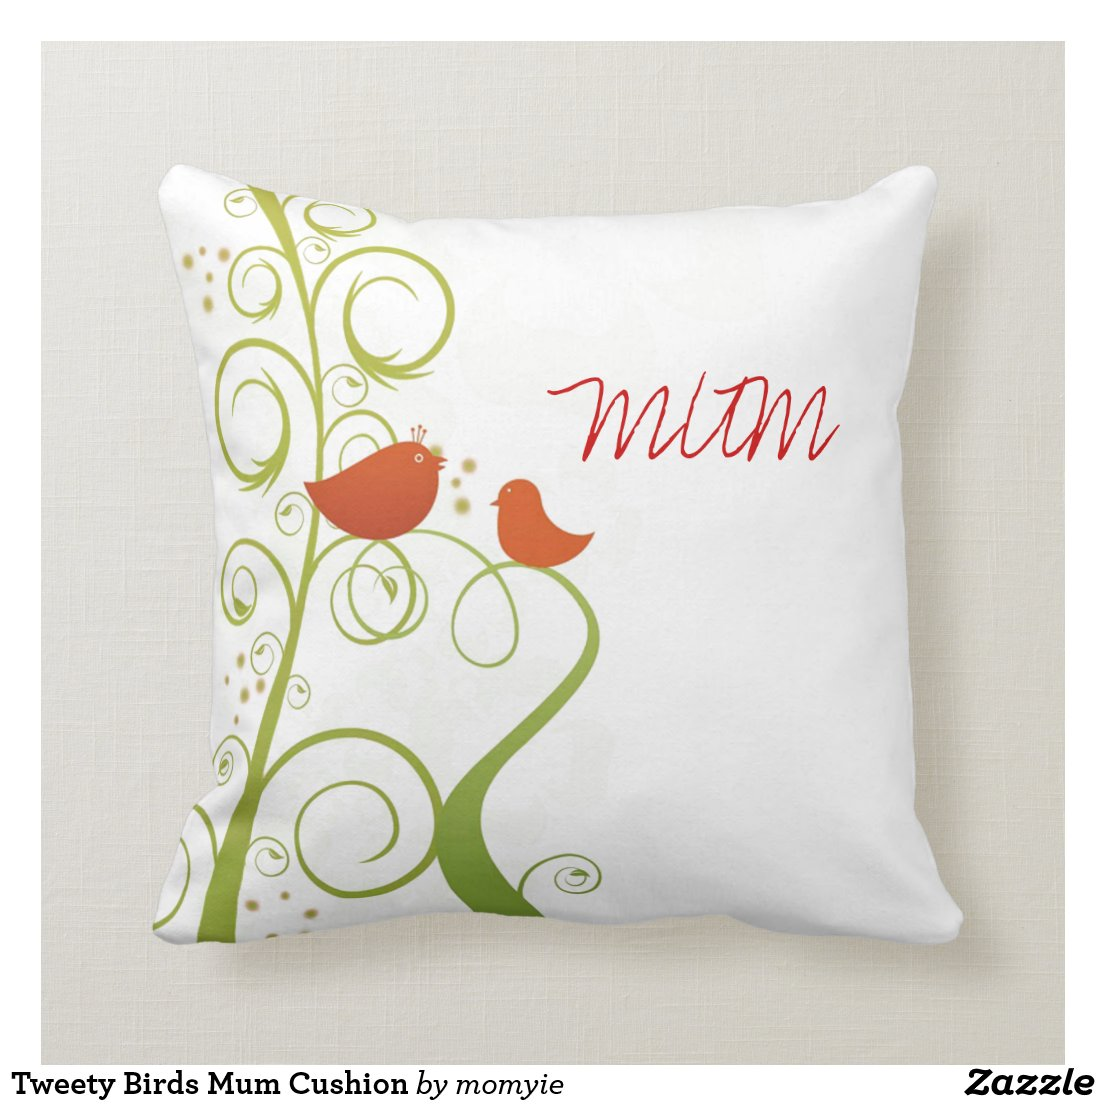 Tweety Birds Mum Cushion